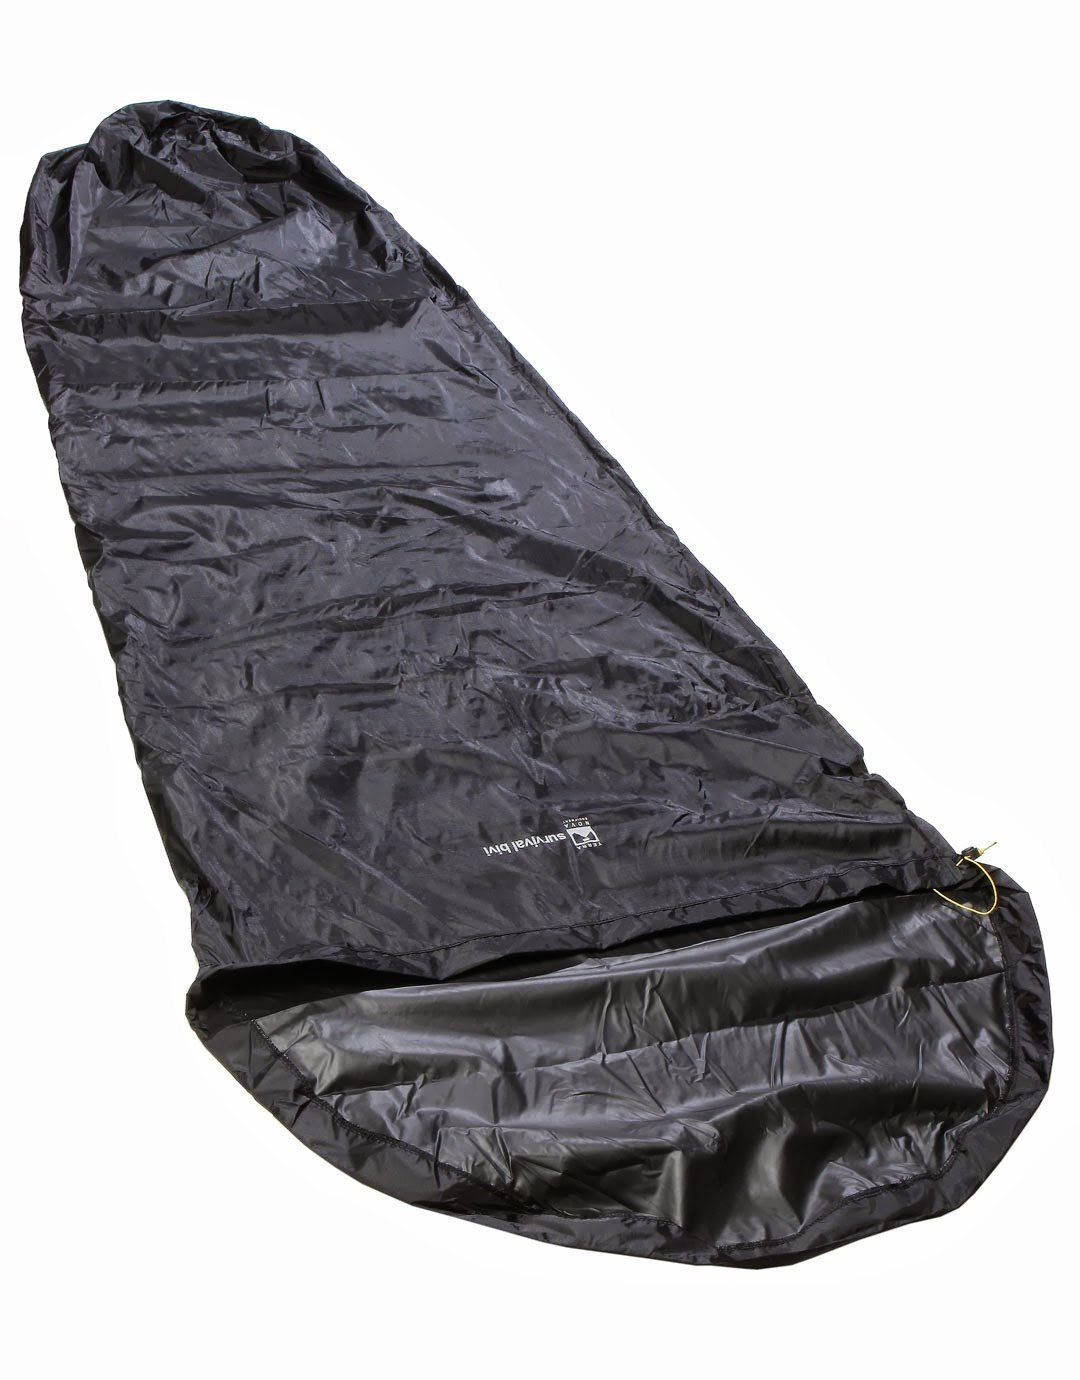 Terra Nova Survival Bivi (Black) 52SB000